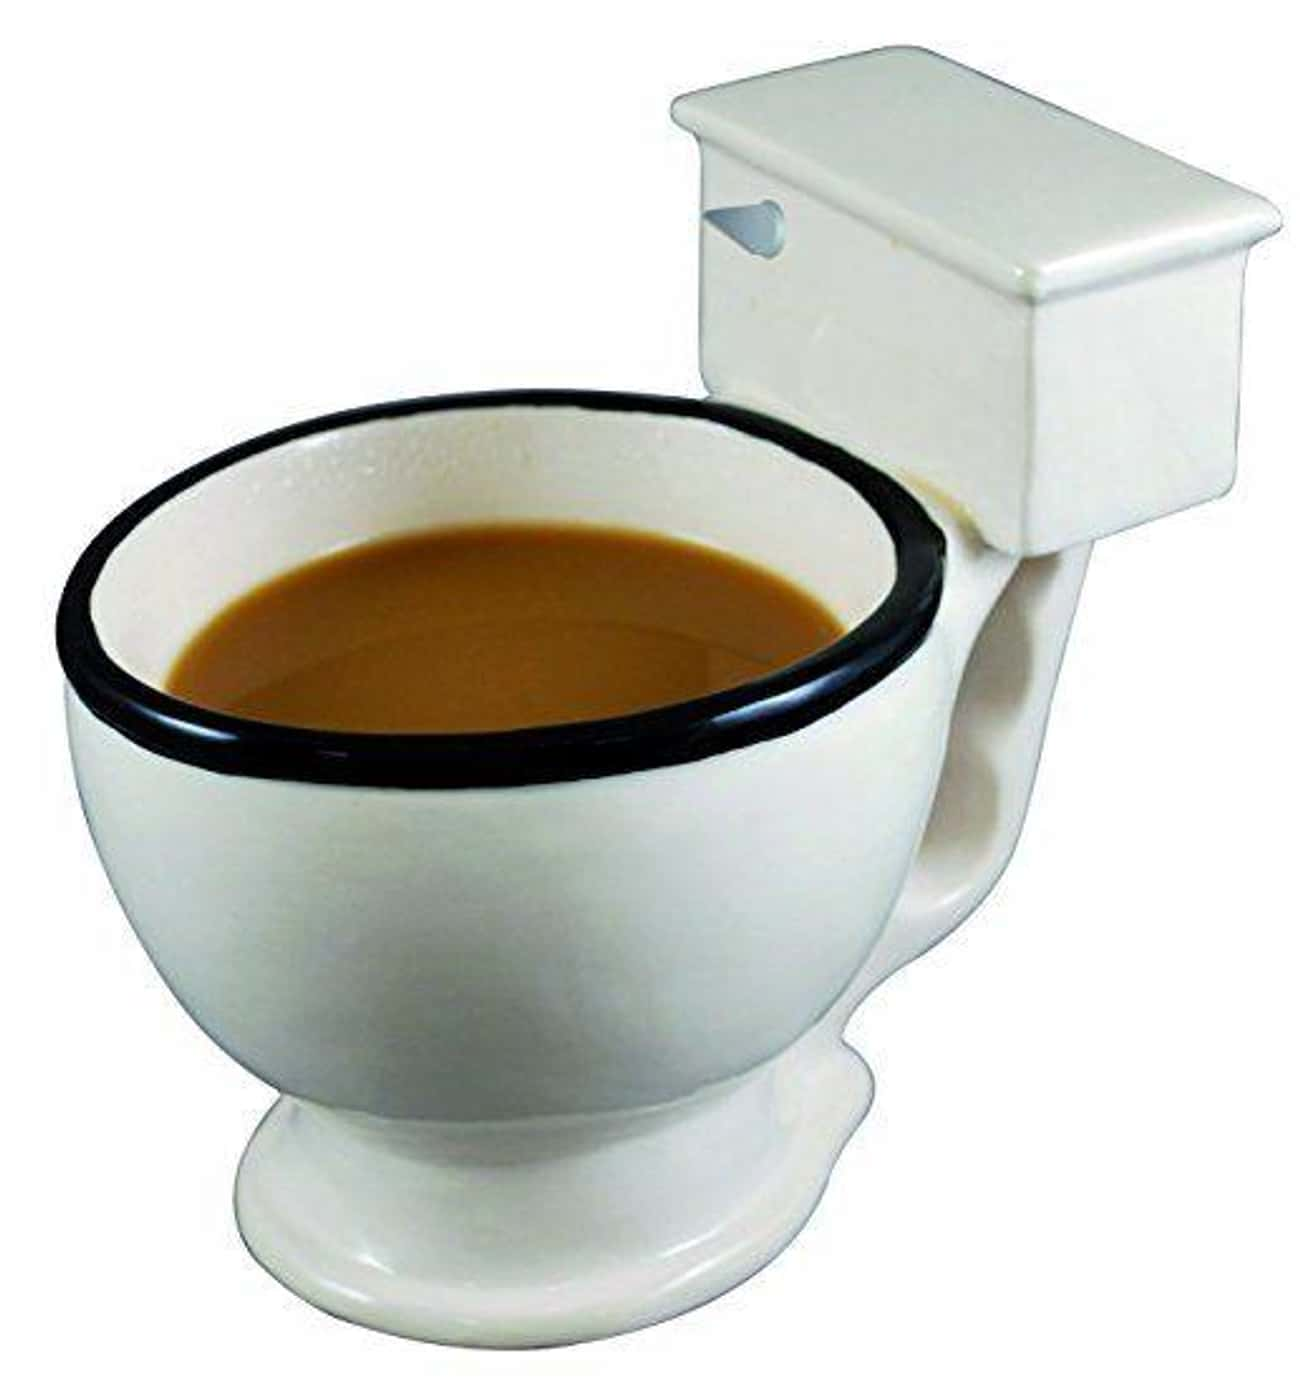 Ceramic Toilet Mug is listed (or ranked) 4 on the list Incredibly Bizarre Gifts That Are Certainly Not For Everybody